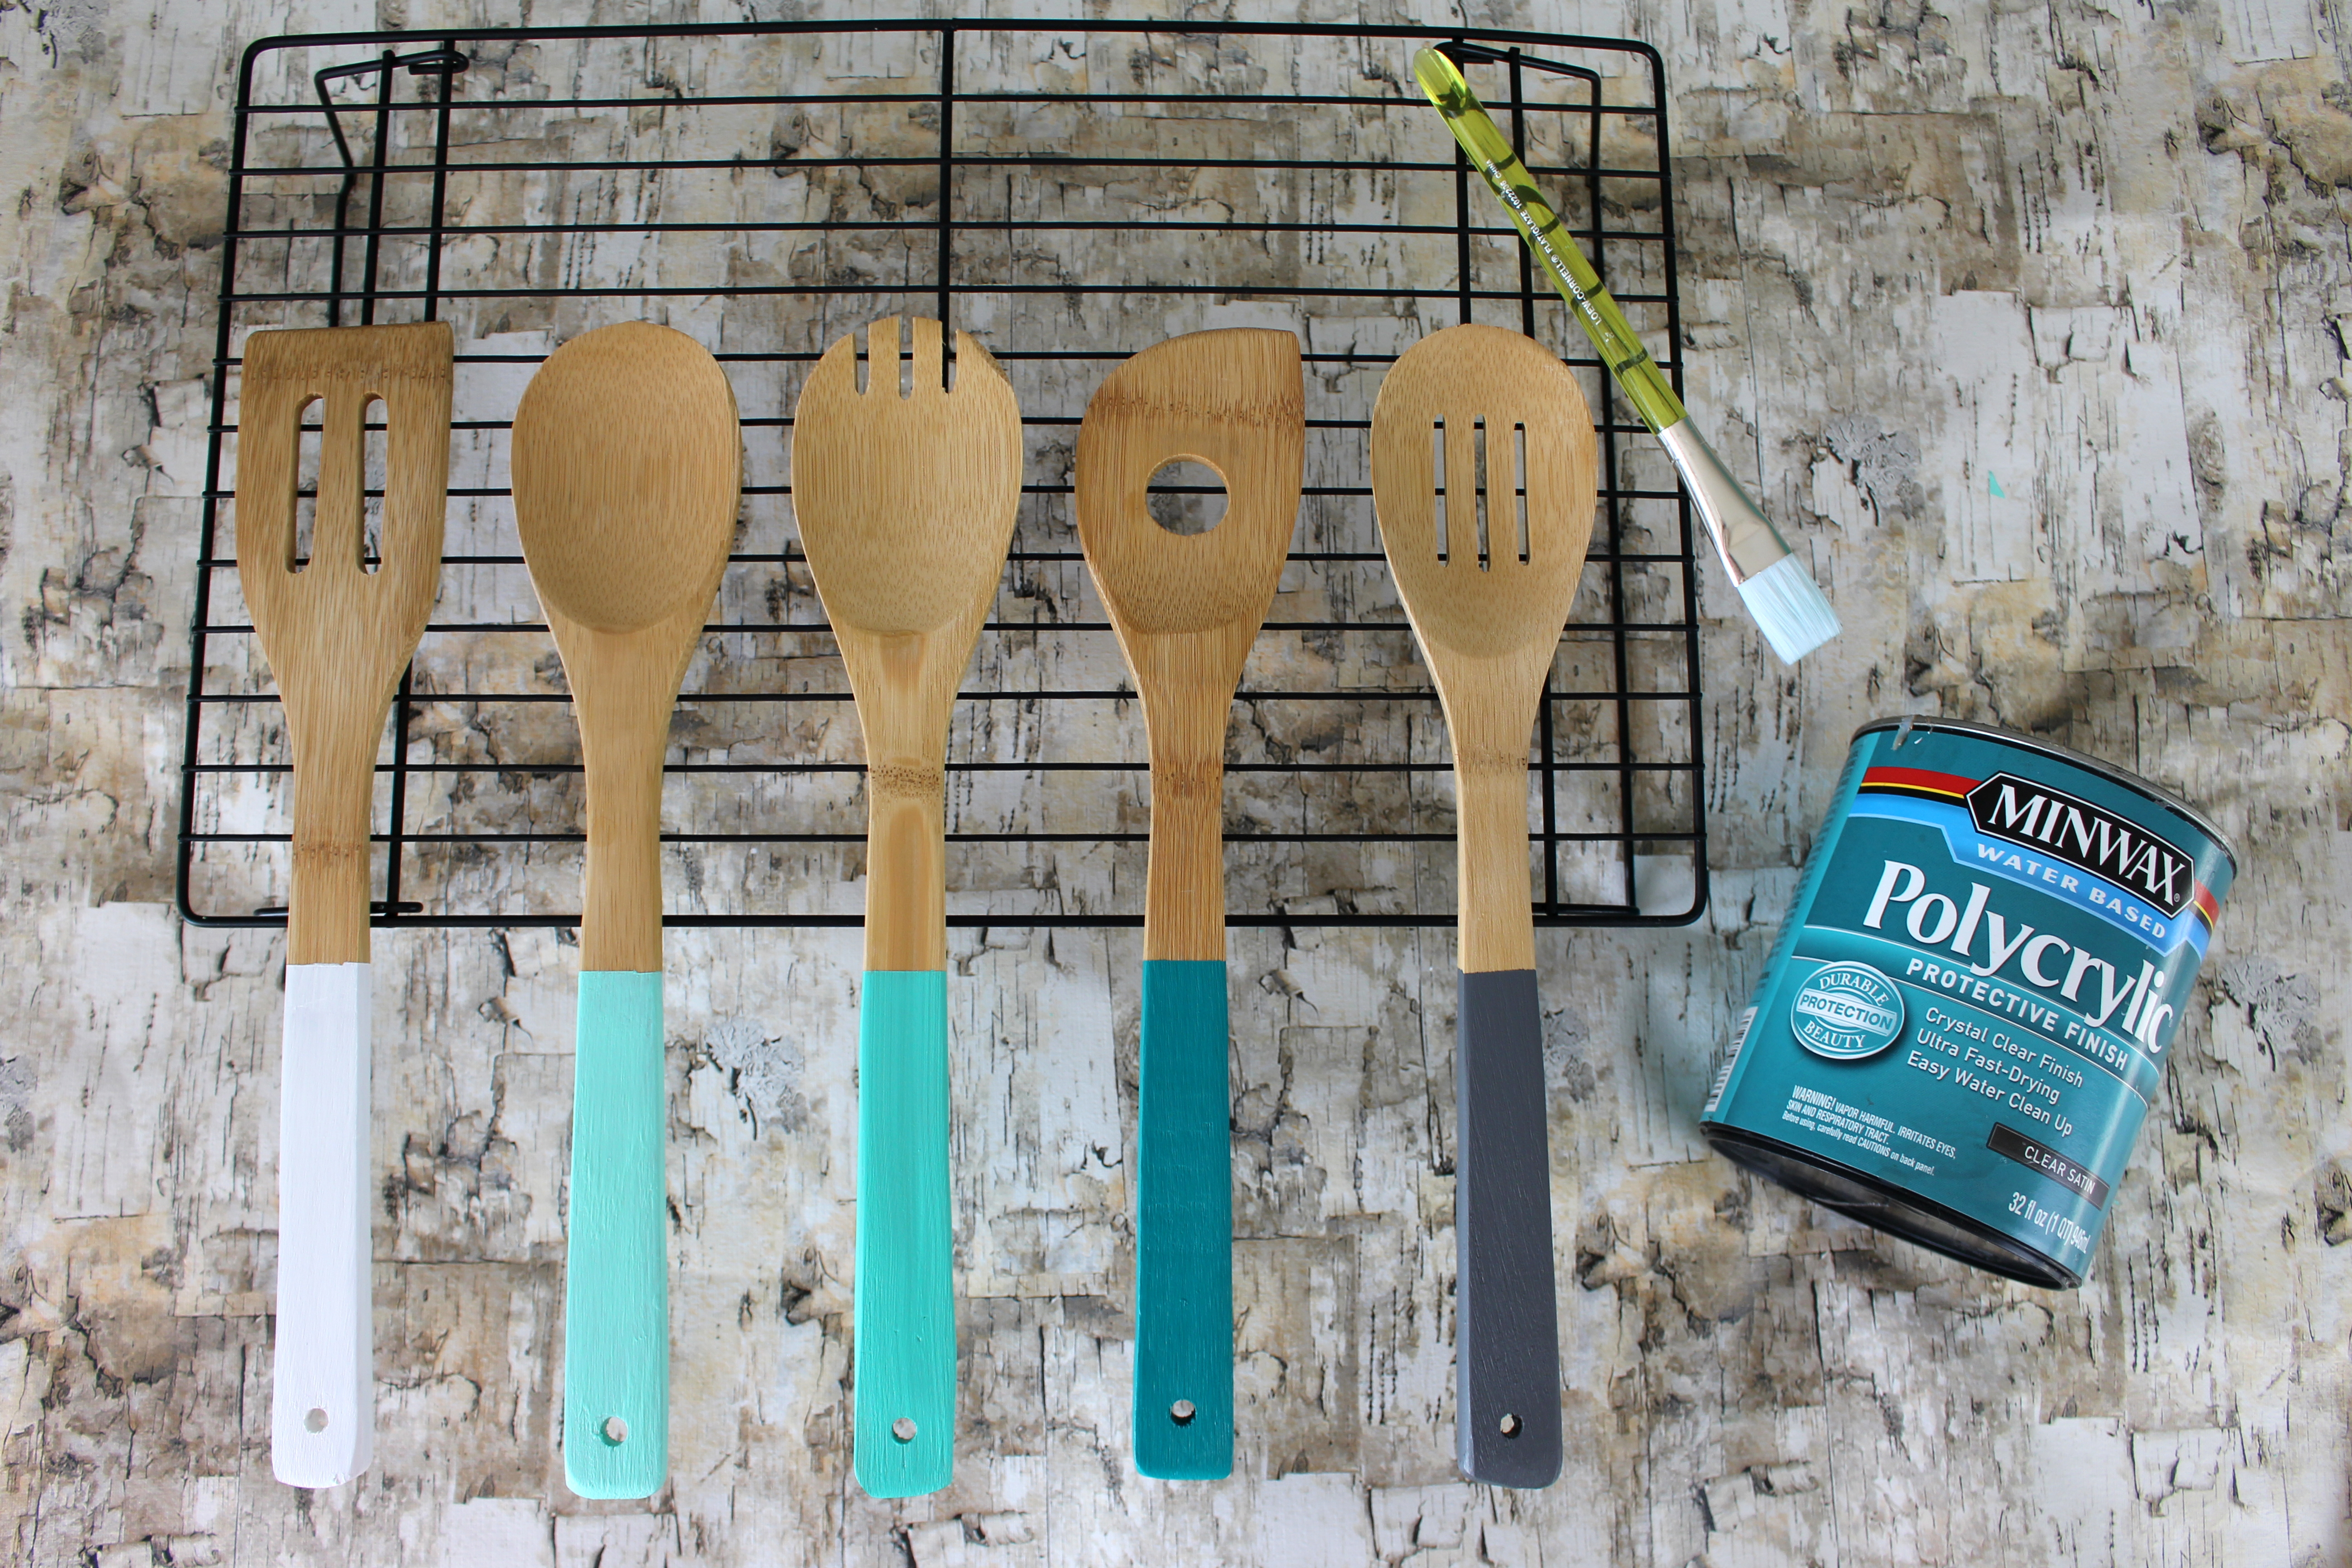 Sealing your painted kitchen utensils